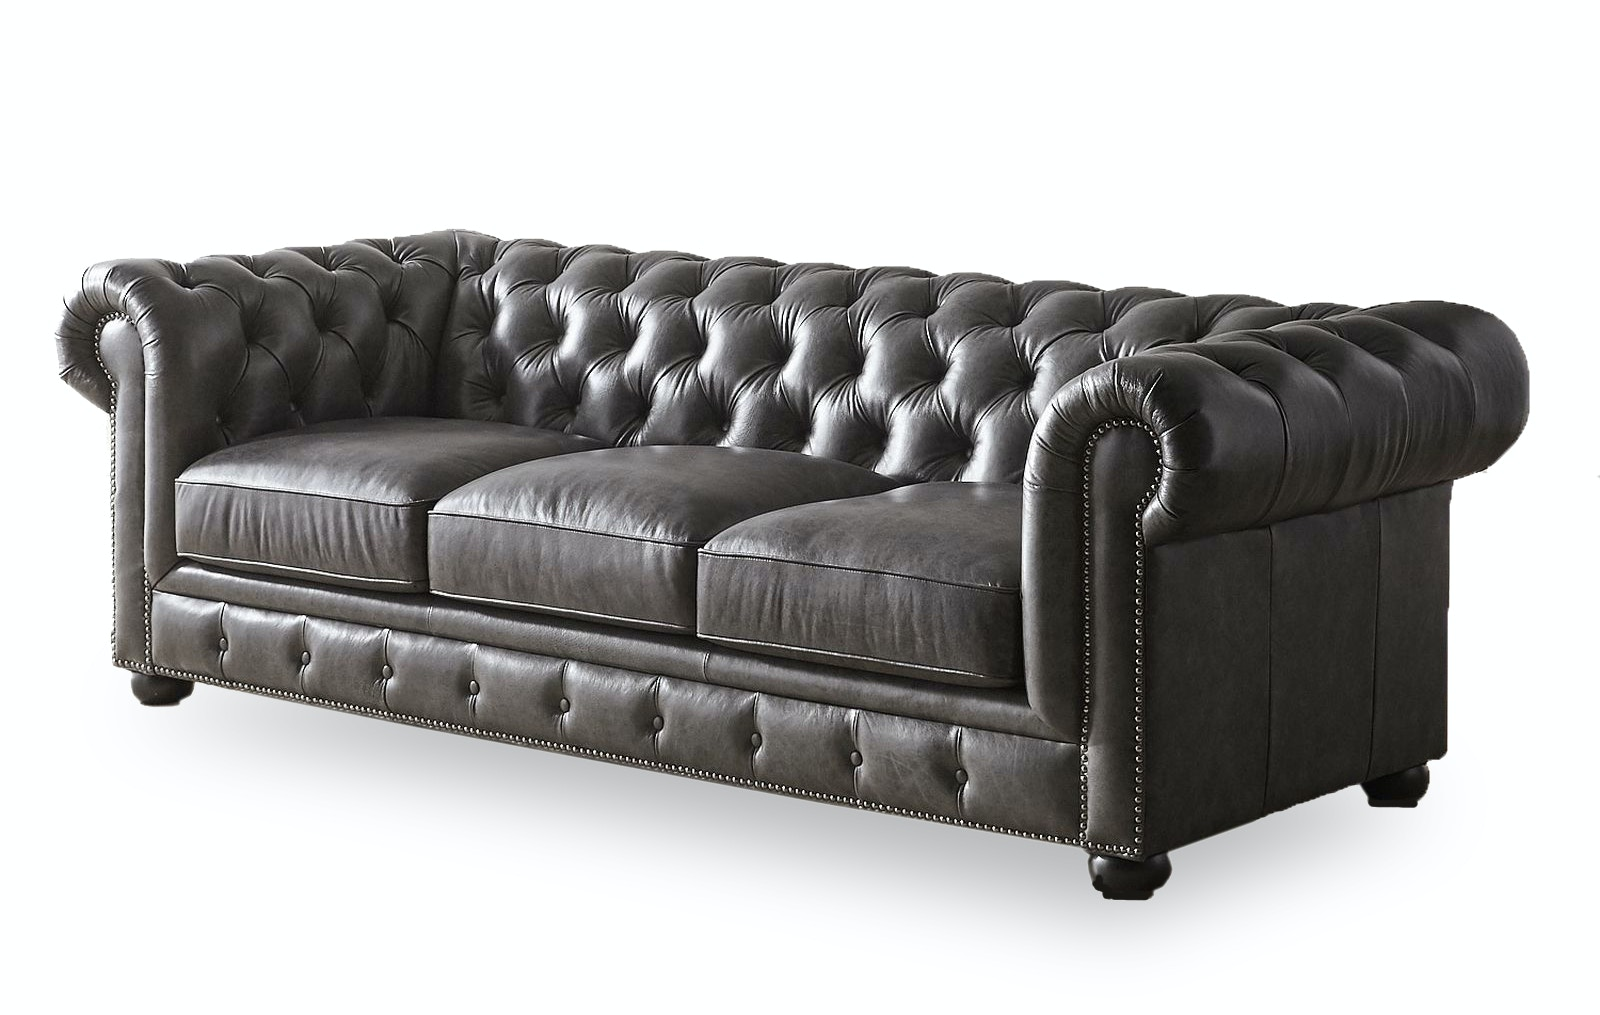 Catalog Feature CARLTON LEATHER SOFA NV3778BSFST From Walter E. Smithe  Furniture + Design